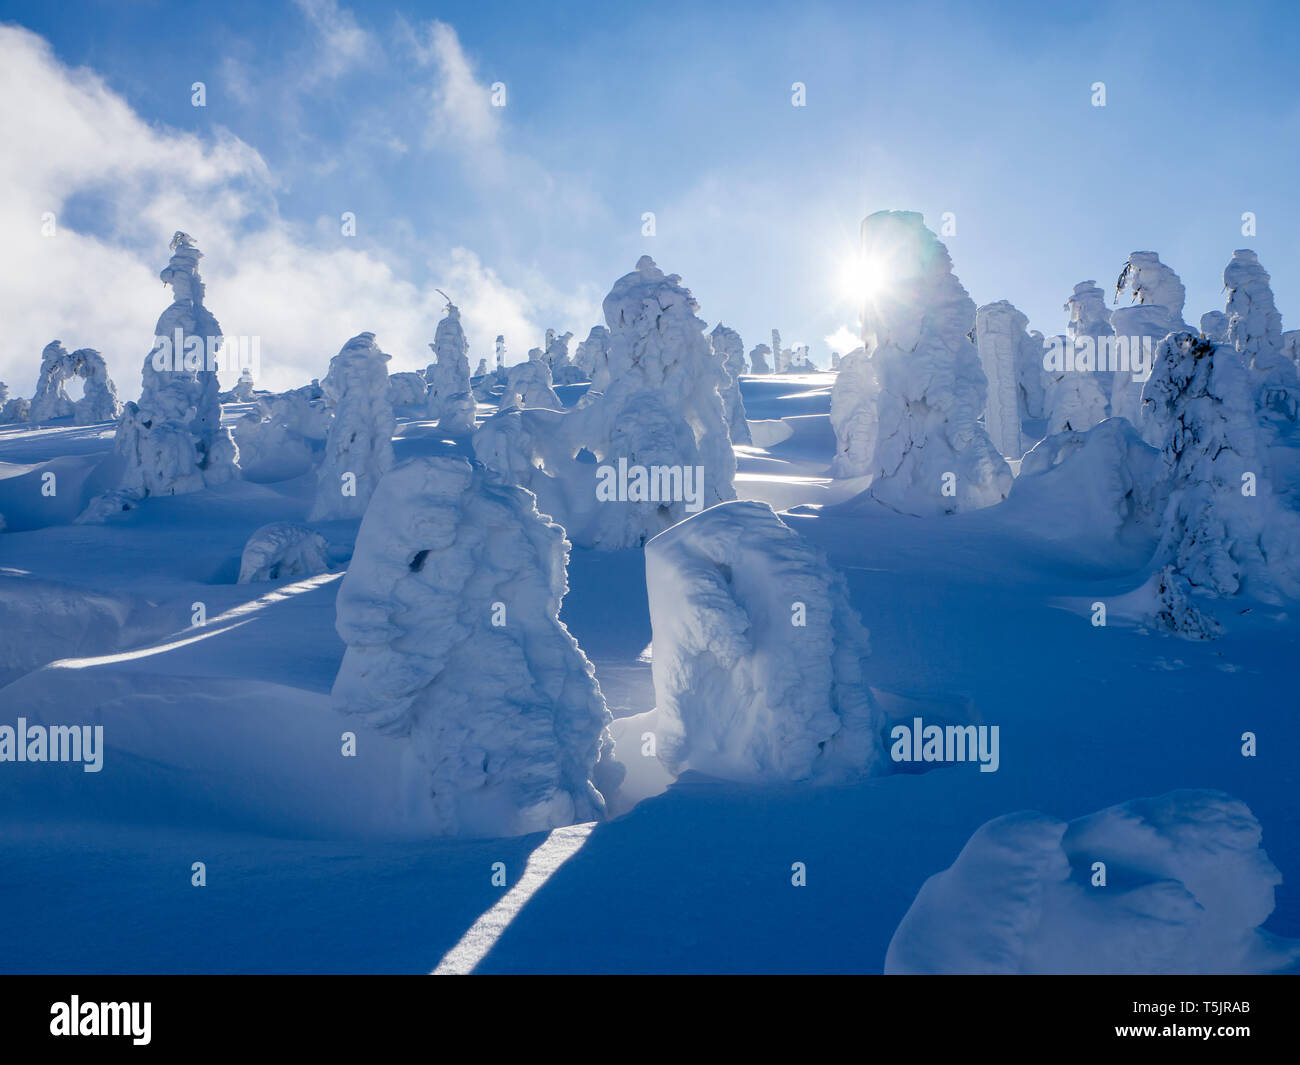 Germany, Upper Bavarian Forest Nature Park, winter landscape with snow-covered conifers at backlight - Stock Image